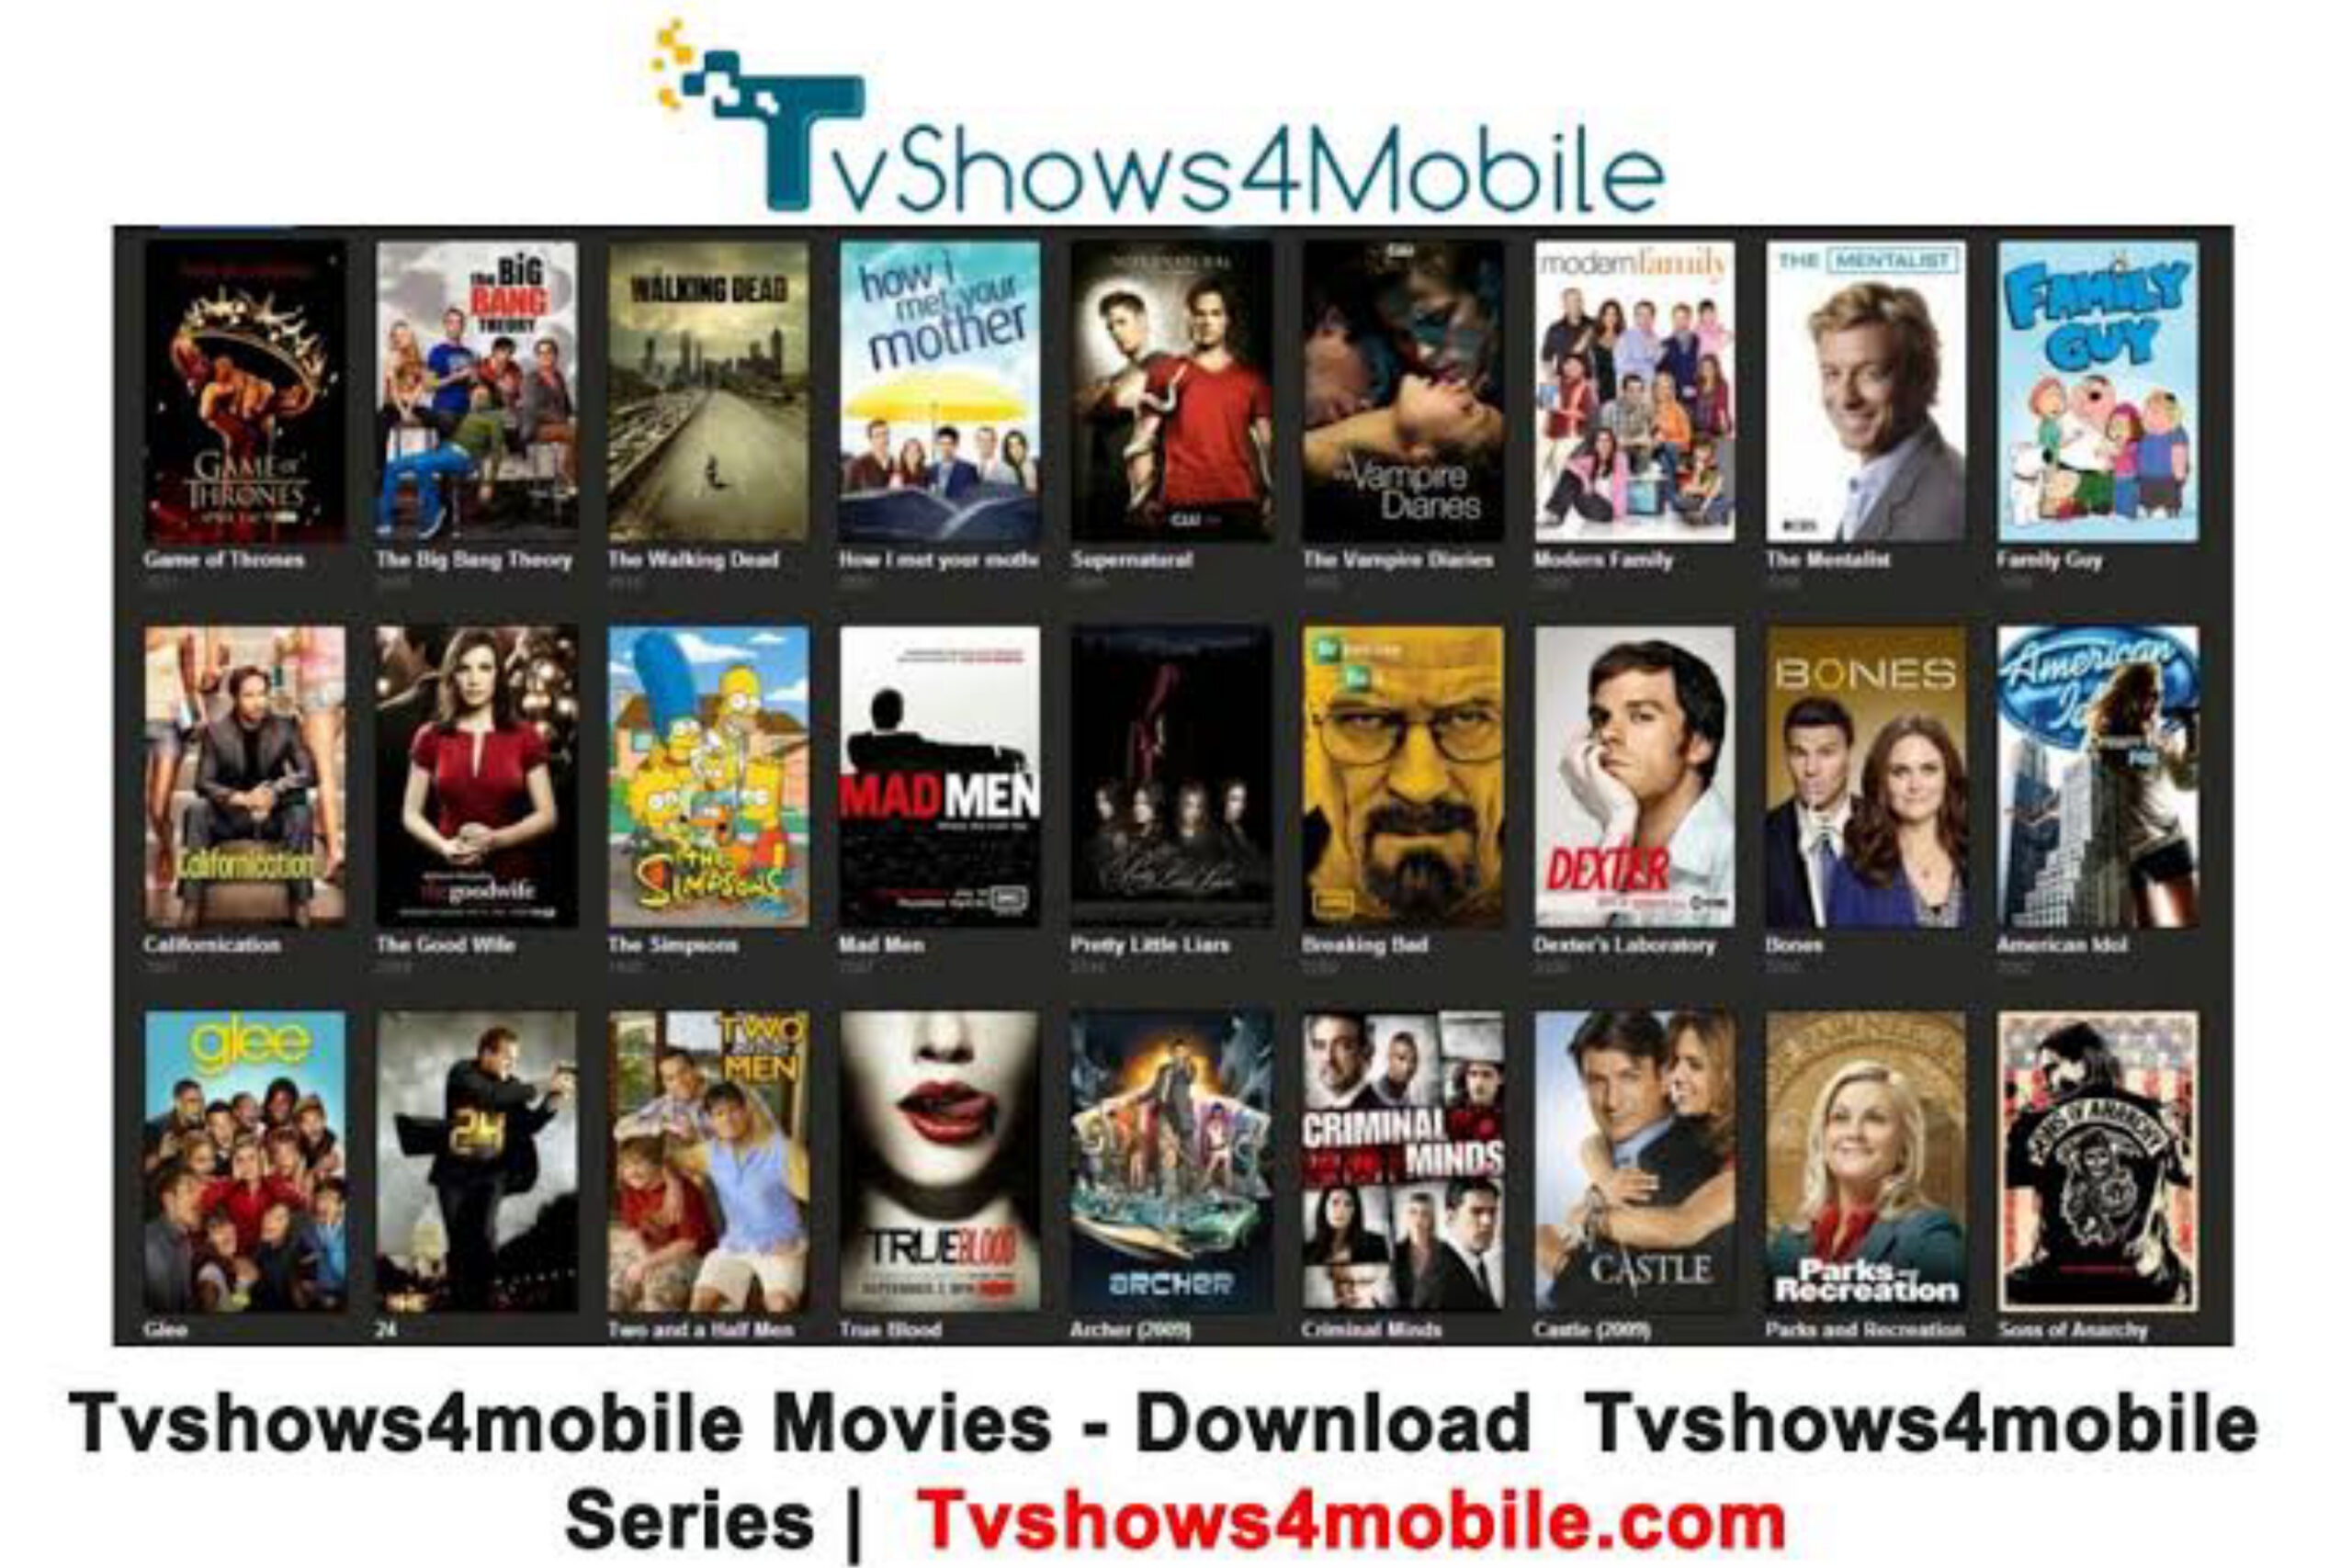 Download Latest Movies and TV Series on Tvshows4mobile